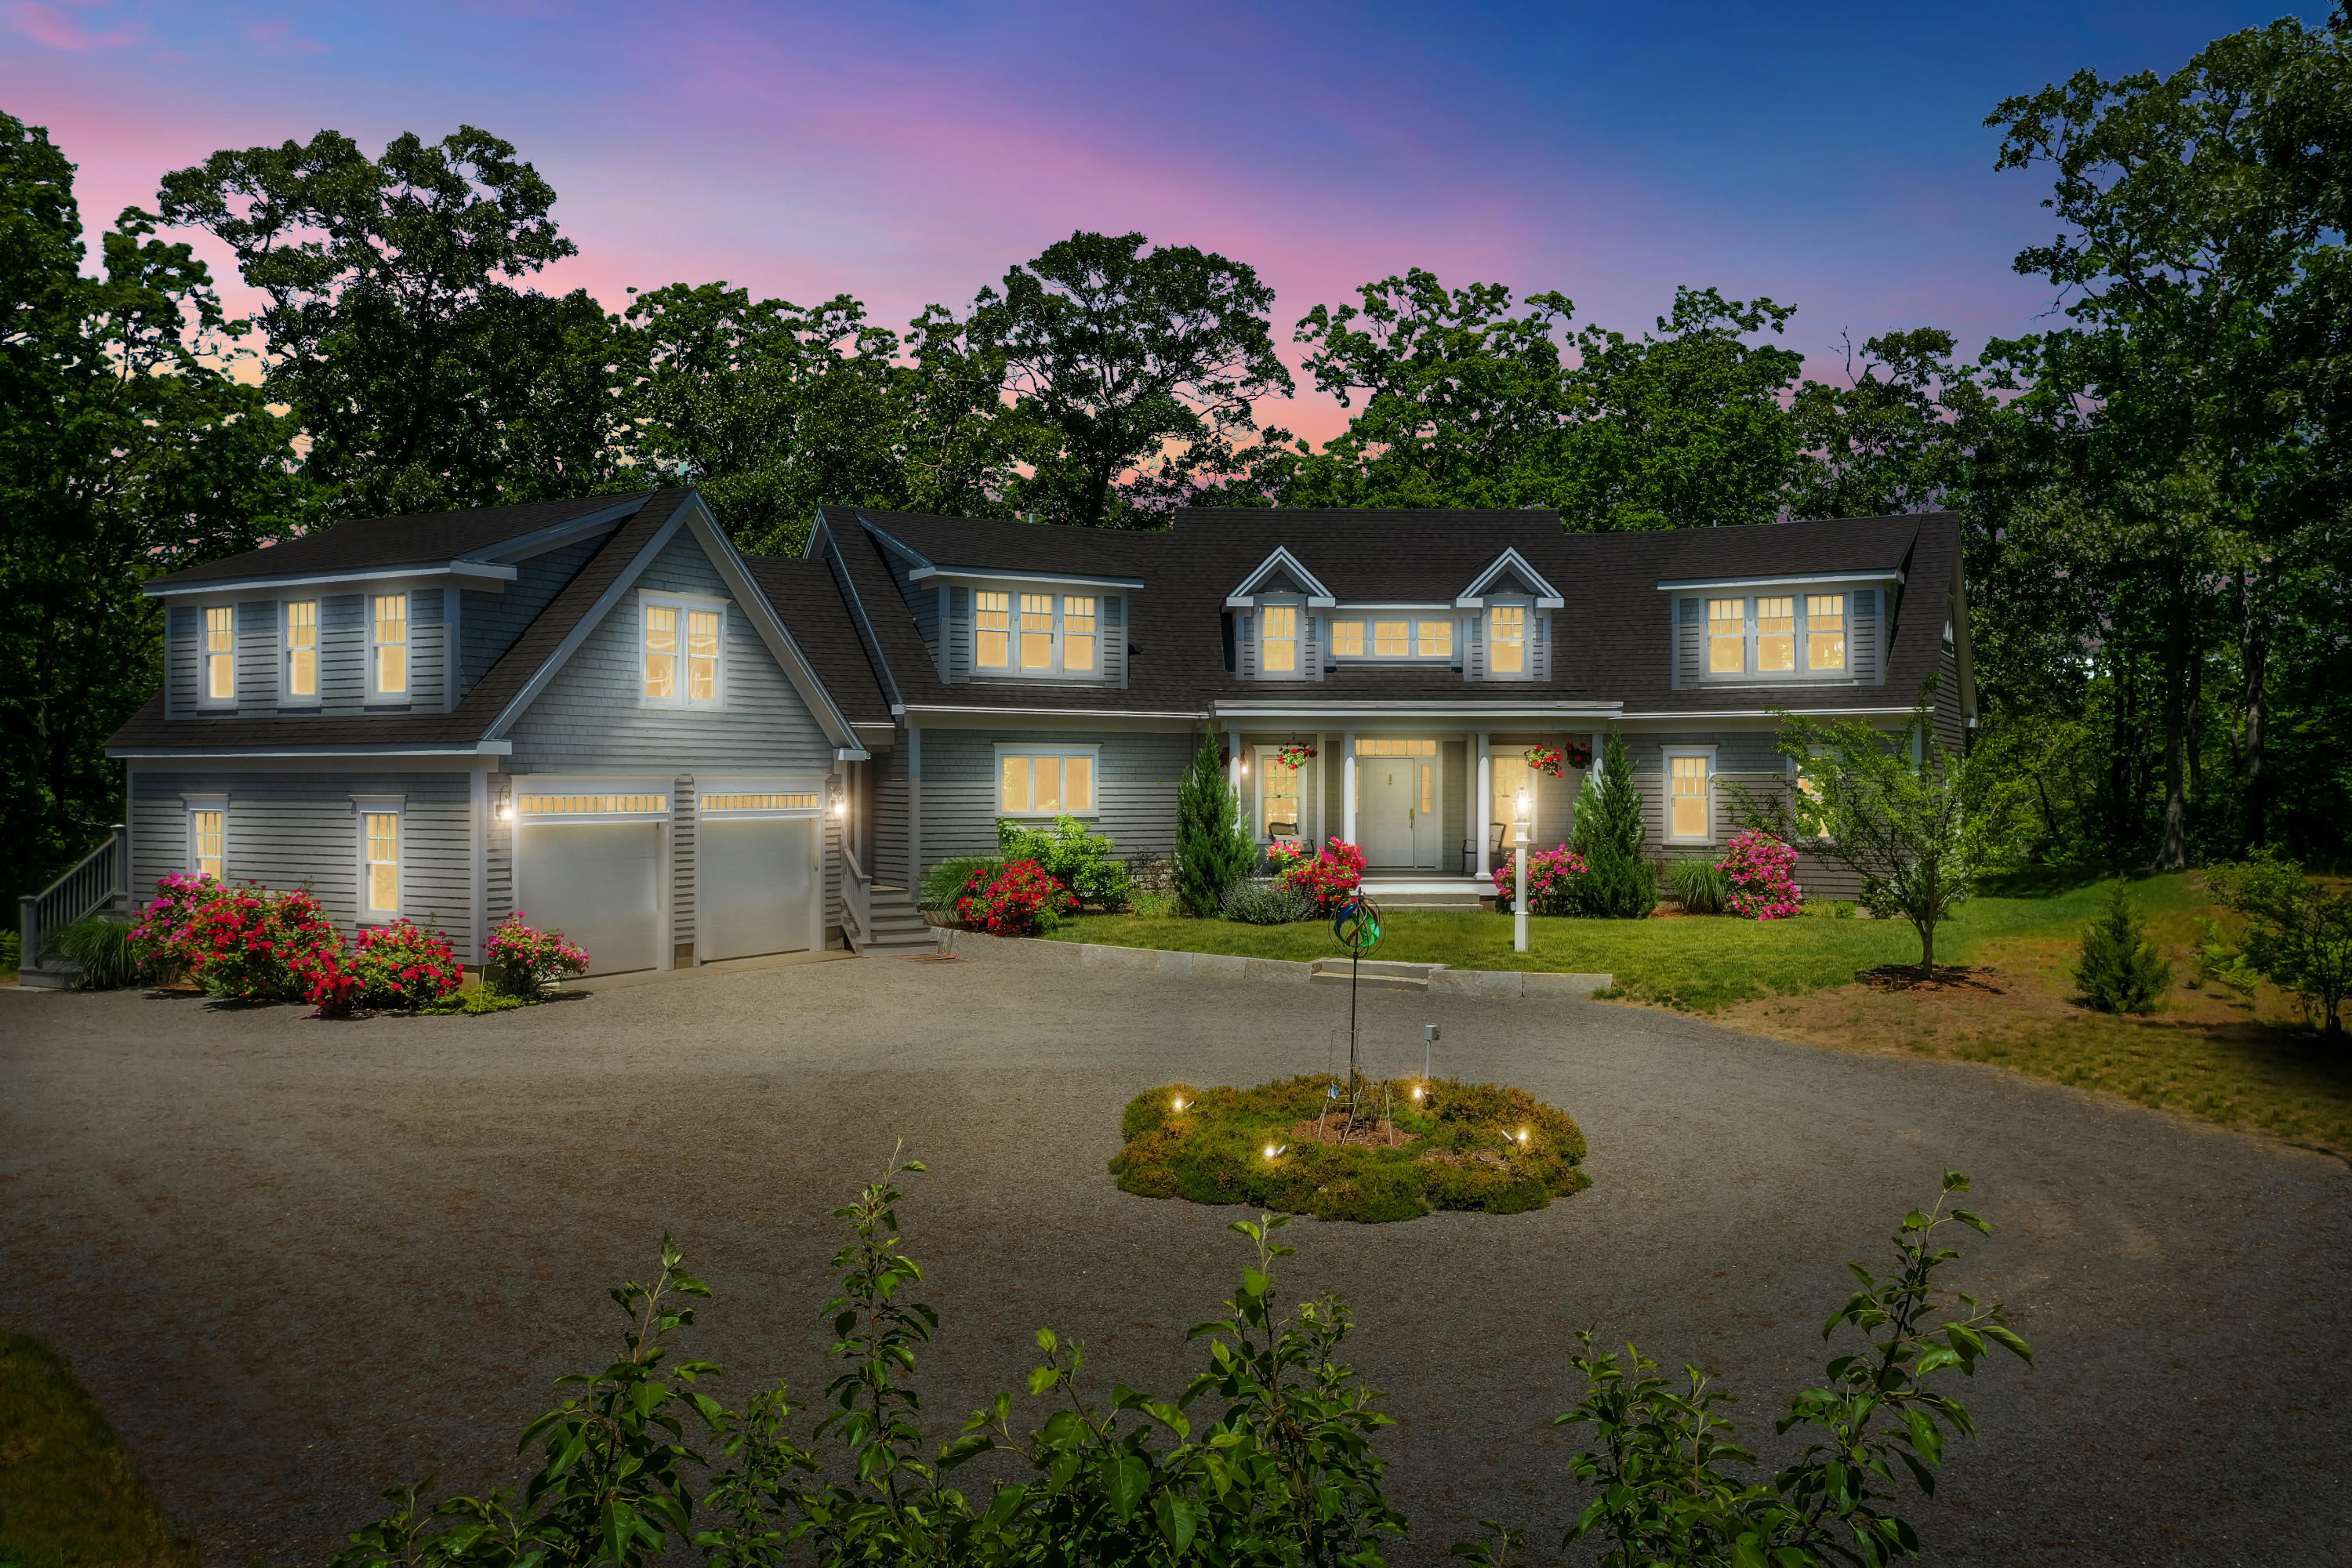 click to view more details 40 Skaket Way, Brewster, MA 02631